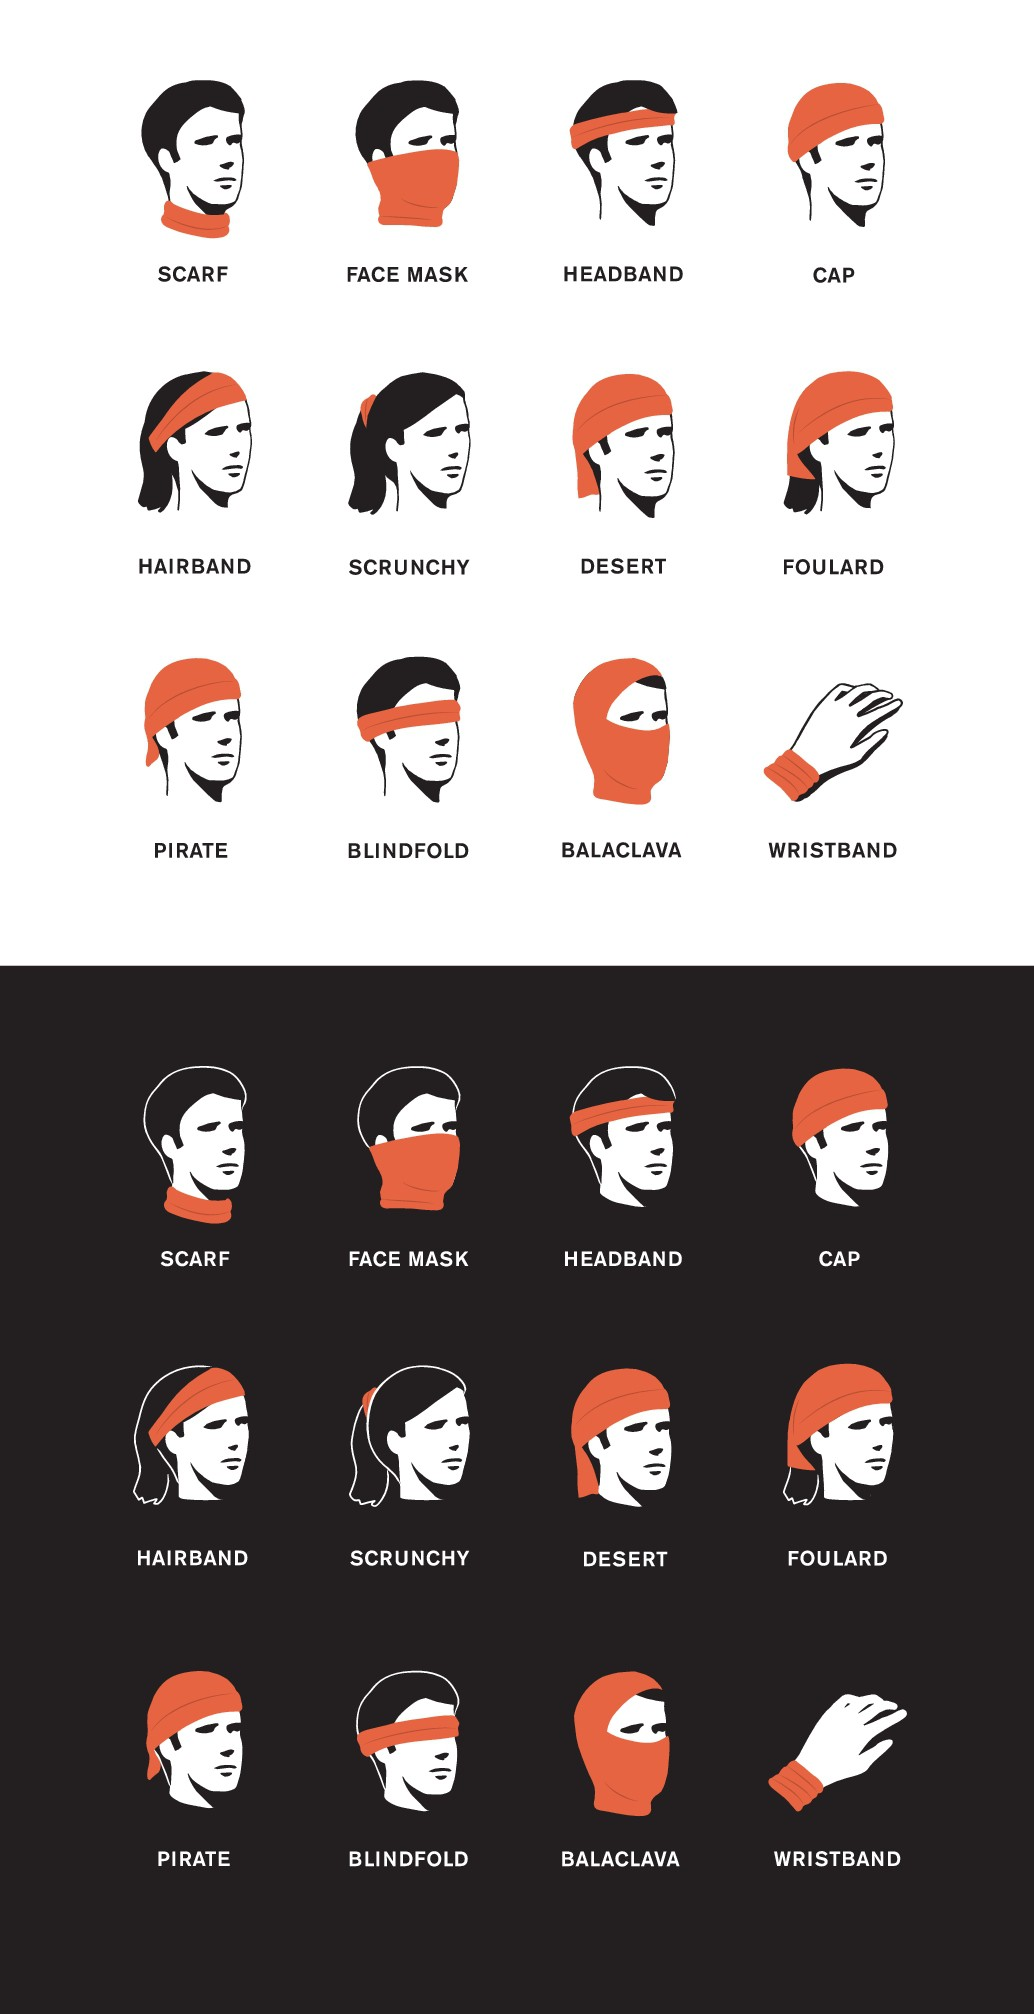 Create How To Use Icons for Multifunctional Headware